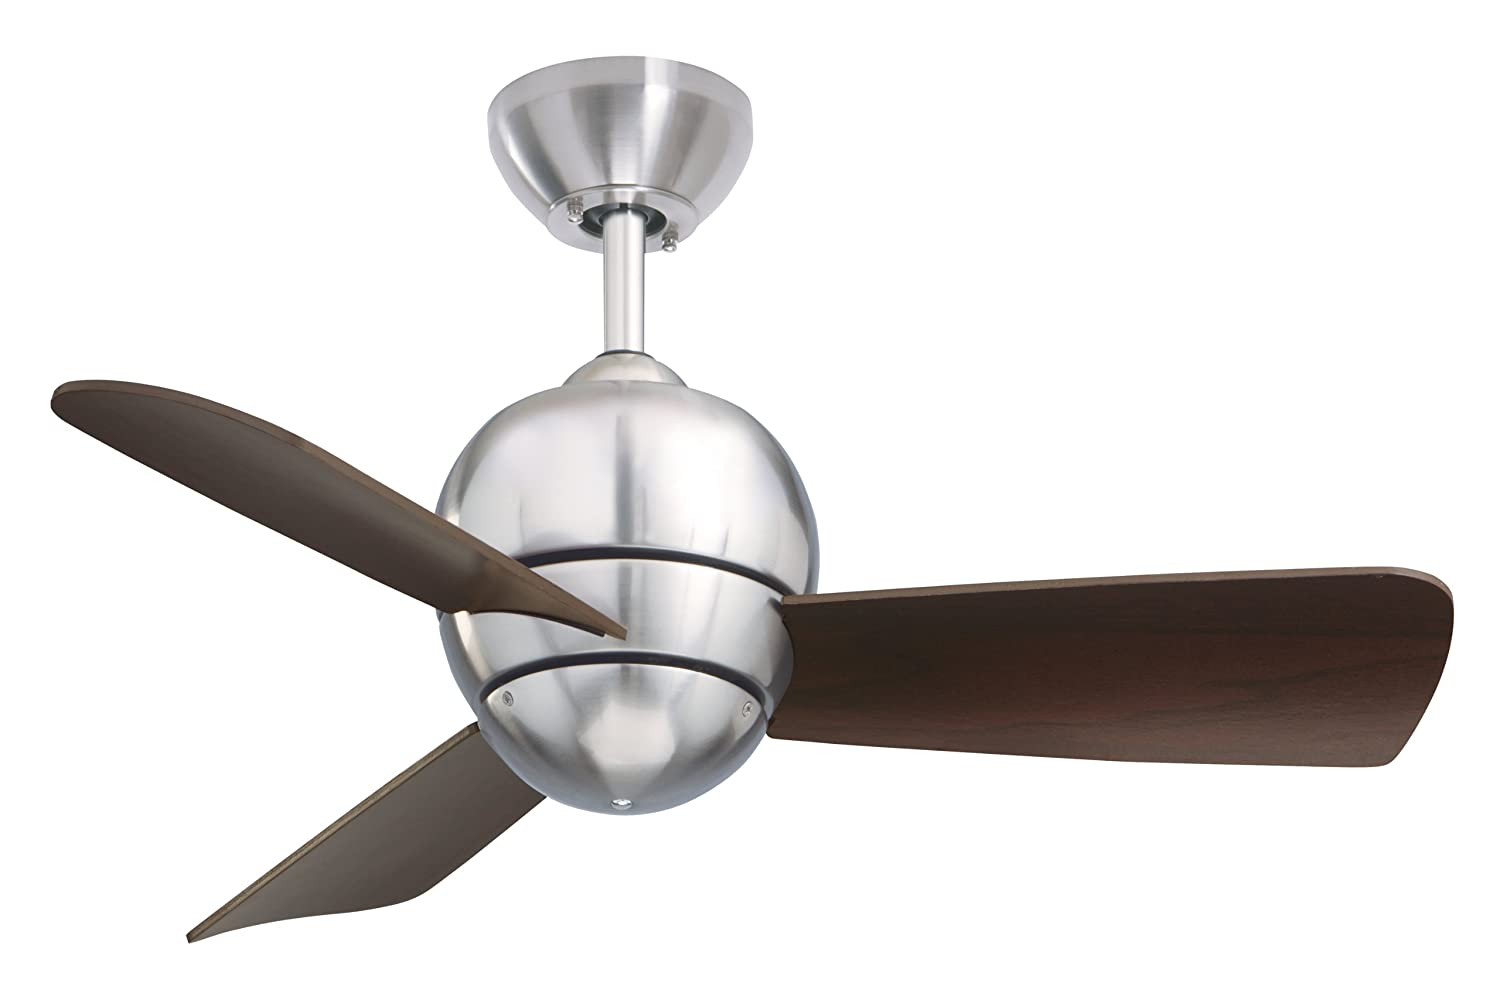 ceiling low profile fans for comfort design